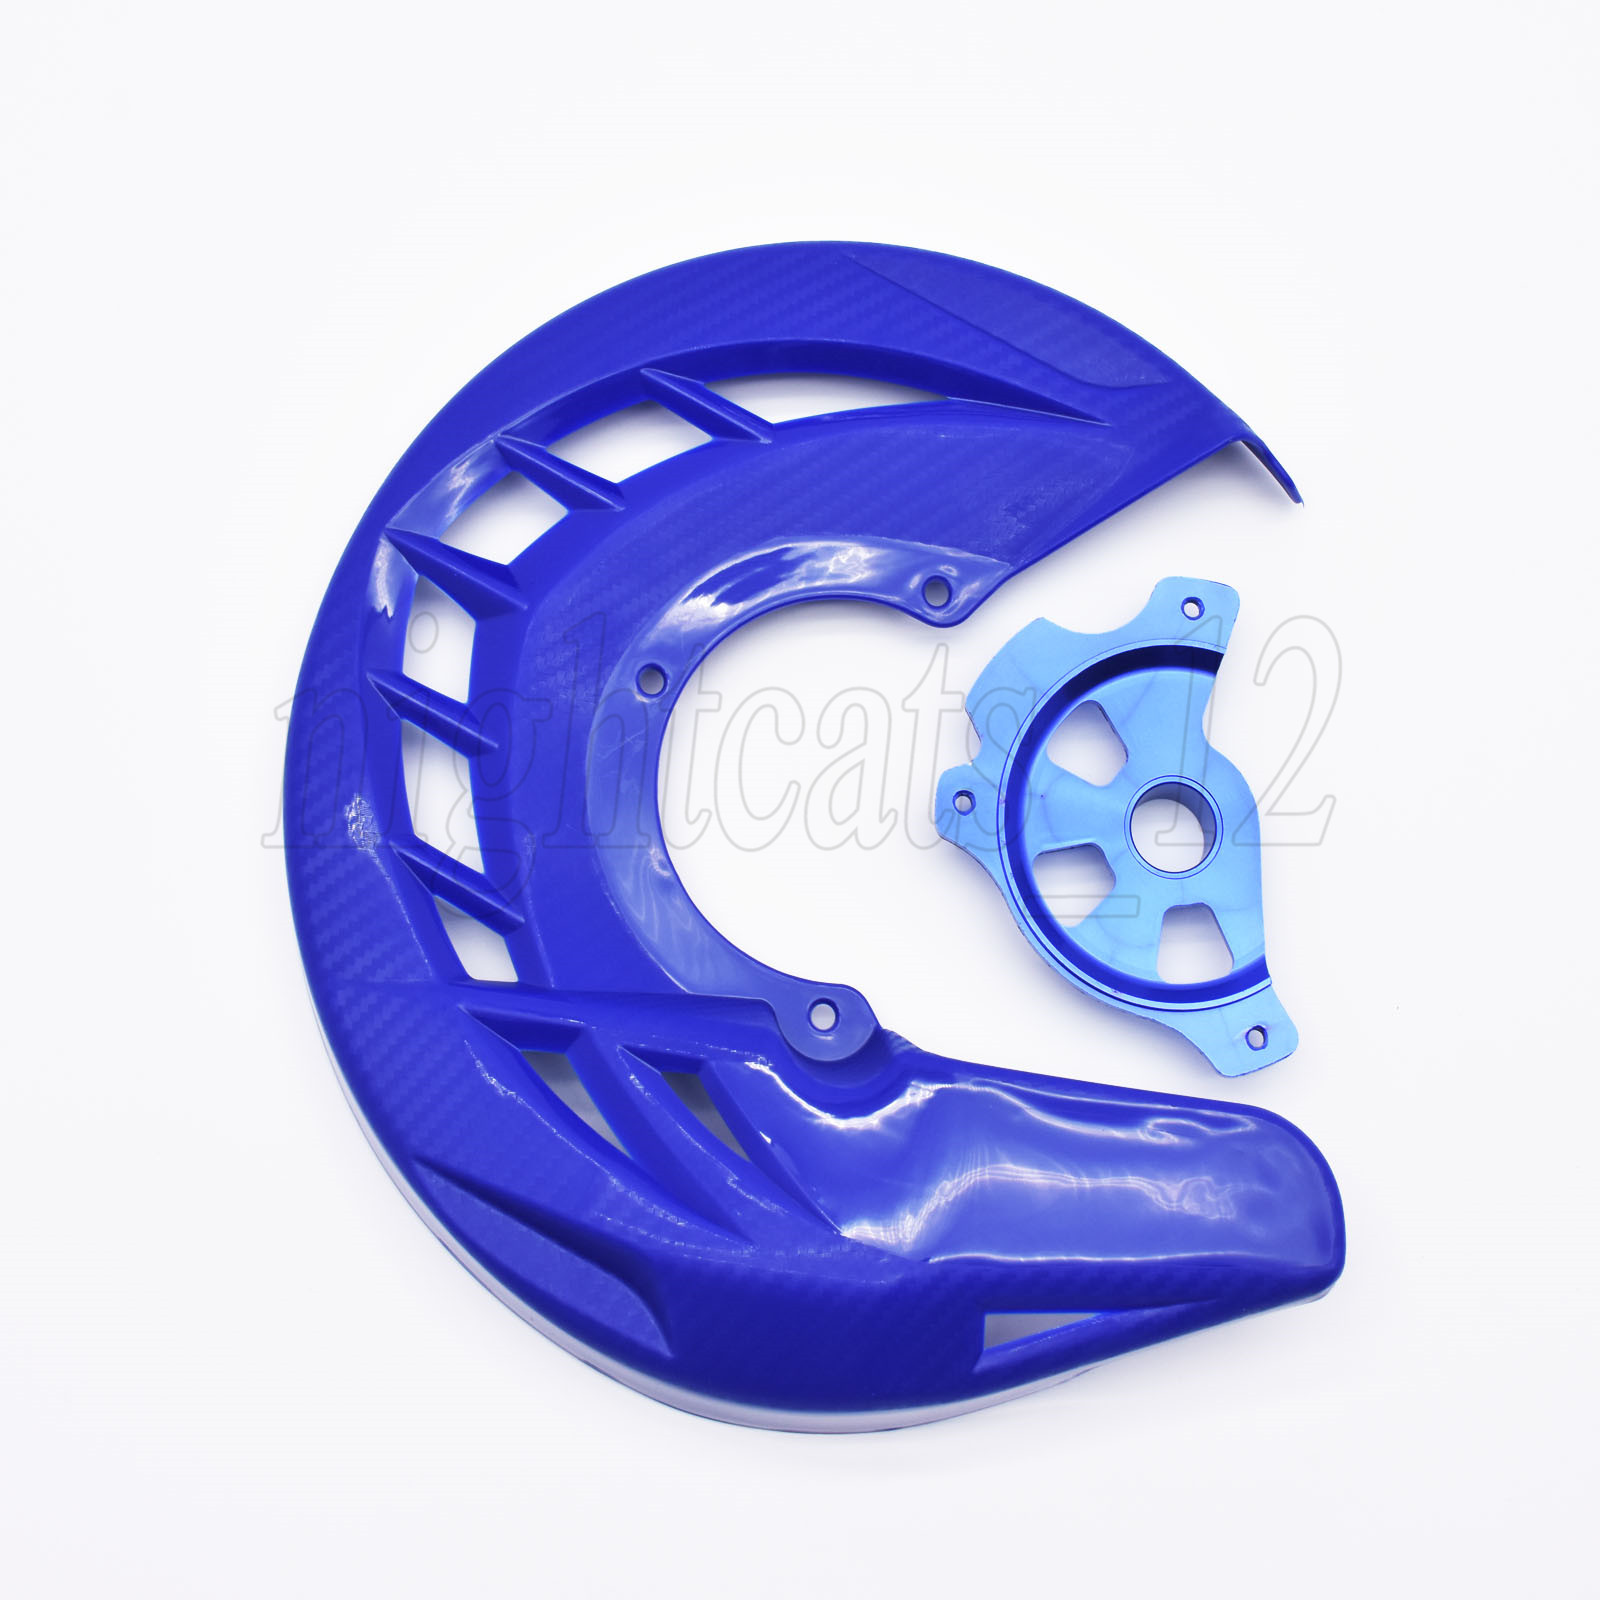 X-Brake Blue Front Brake Disc Cover Fit Yamaha WR250 WR450F YZ125 125X 250 250X